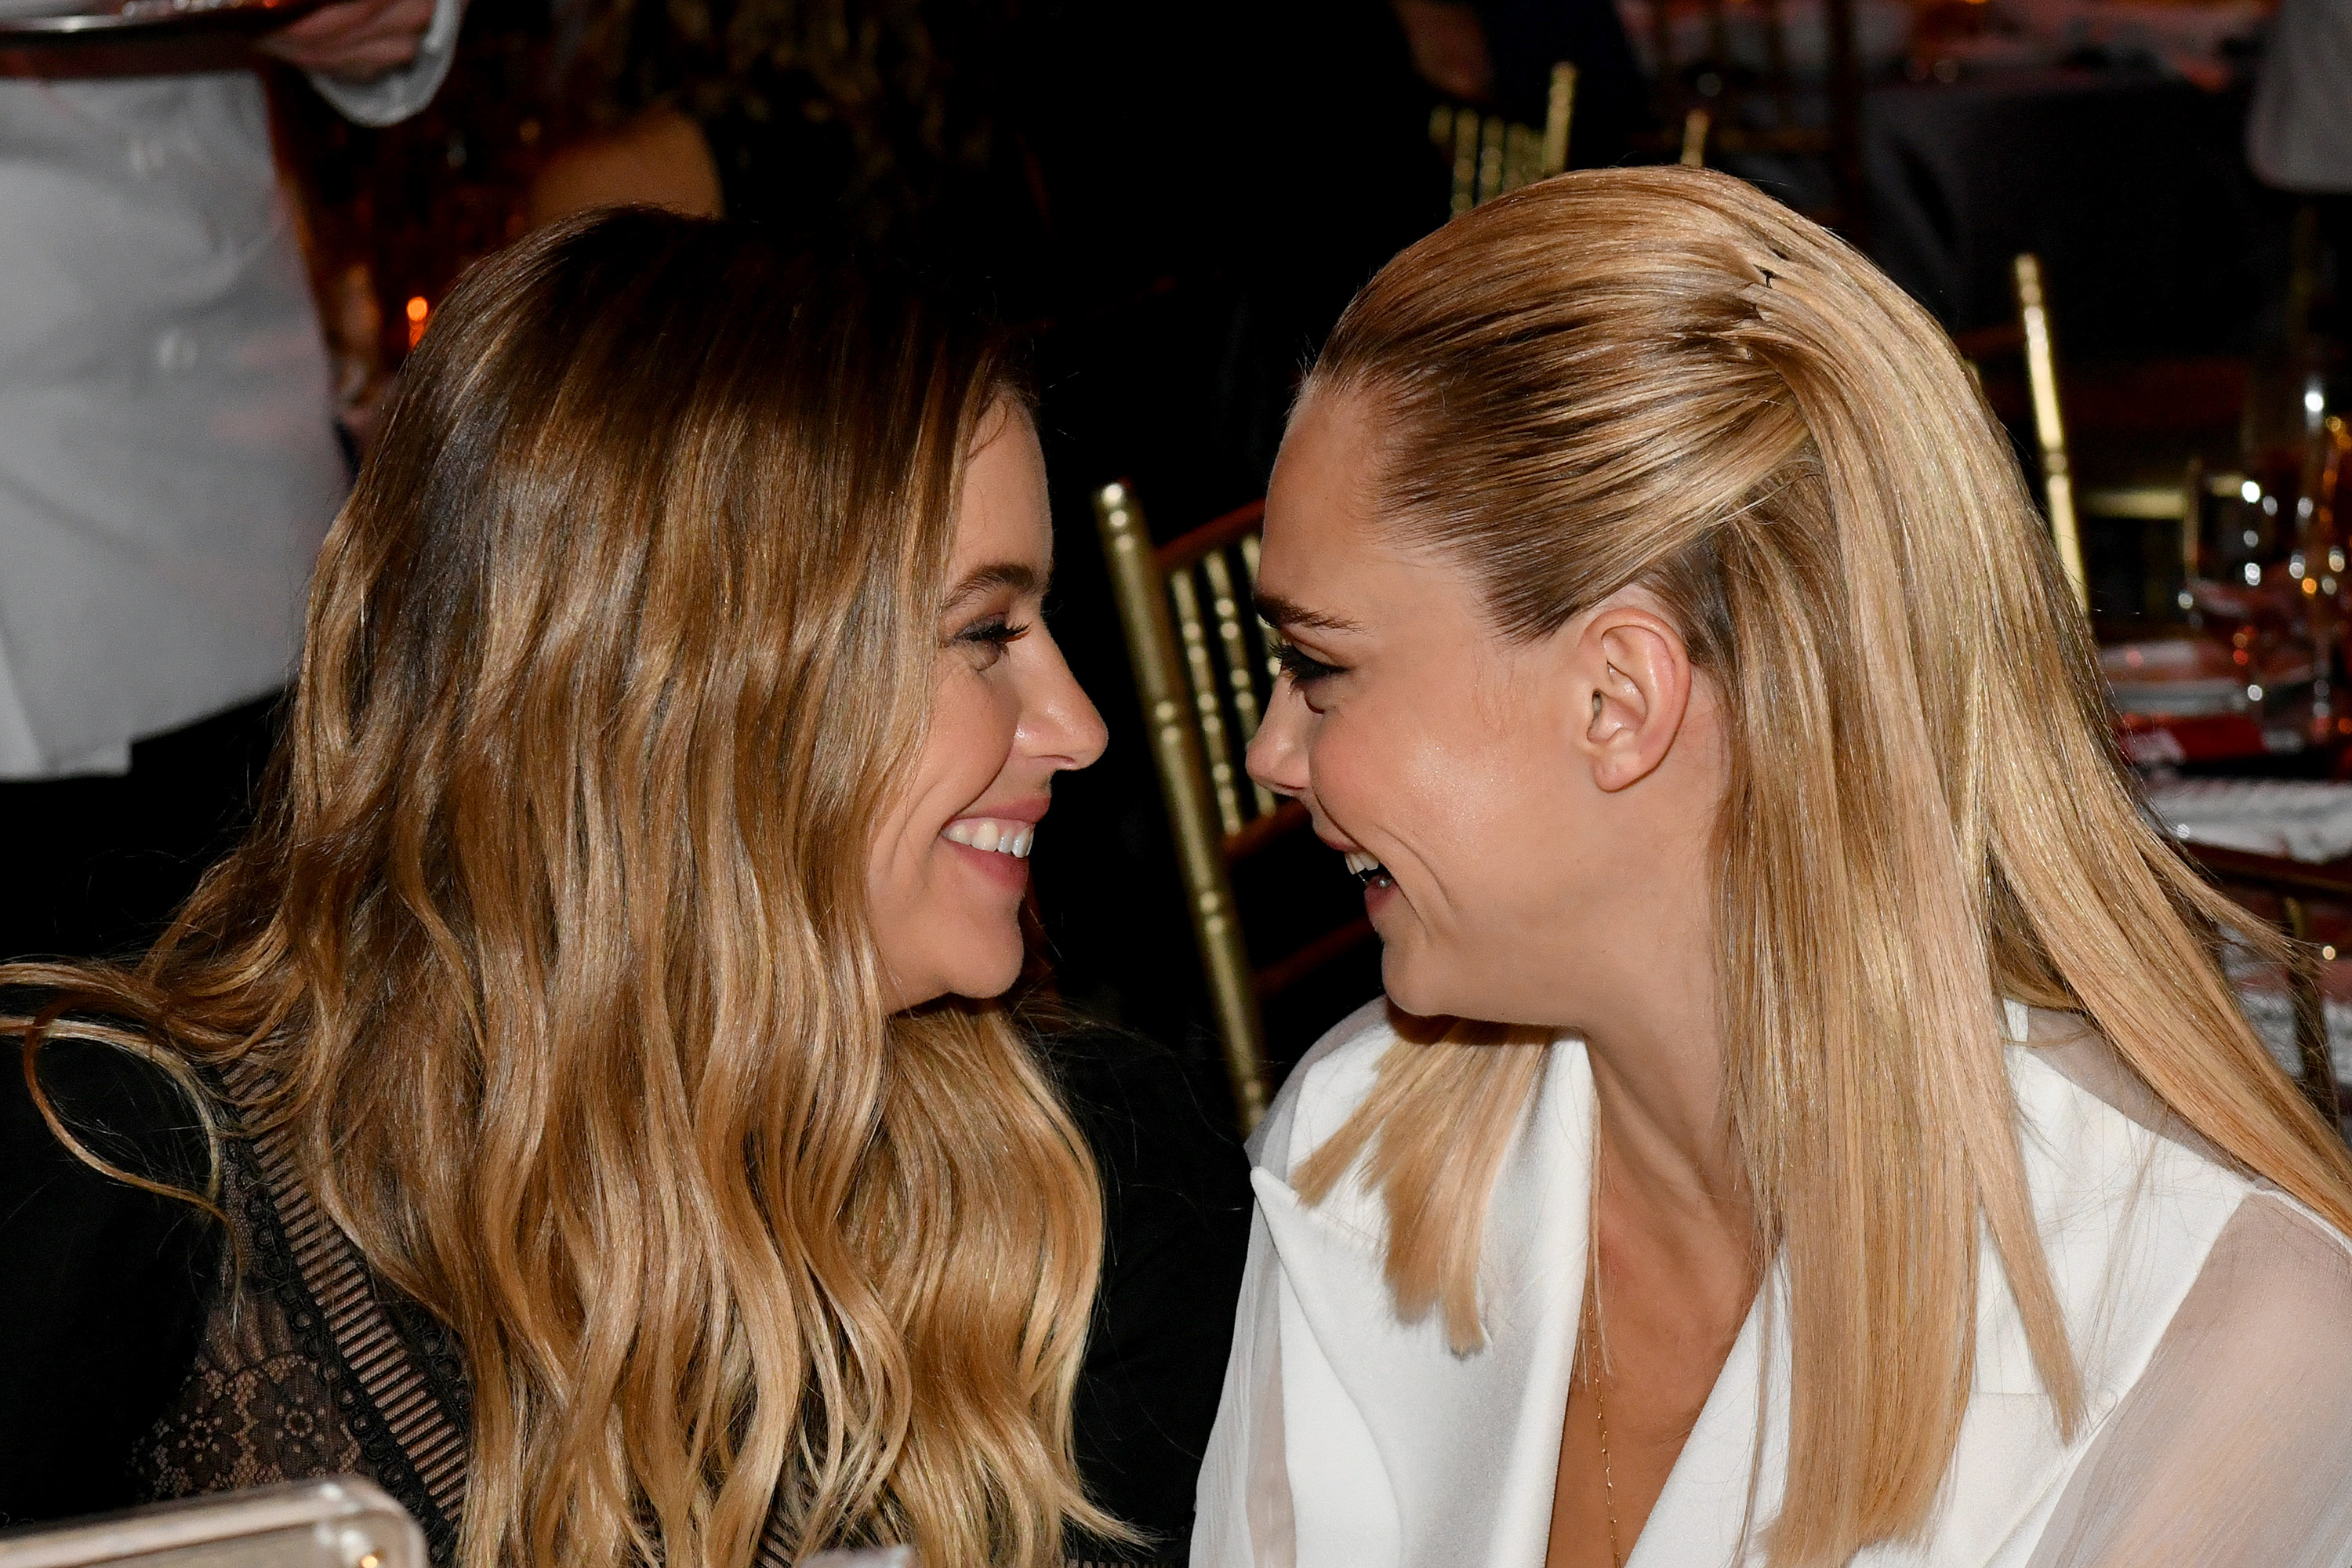 Cara Delevingne et Ashley Benson officialisent leur couple